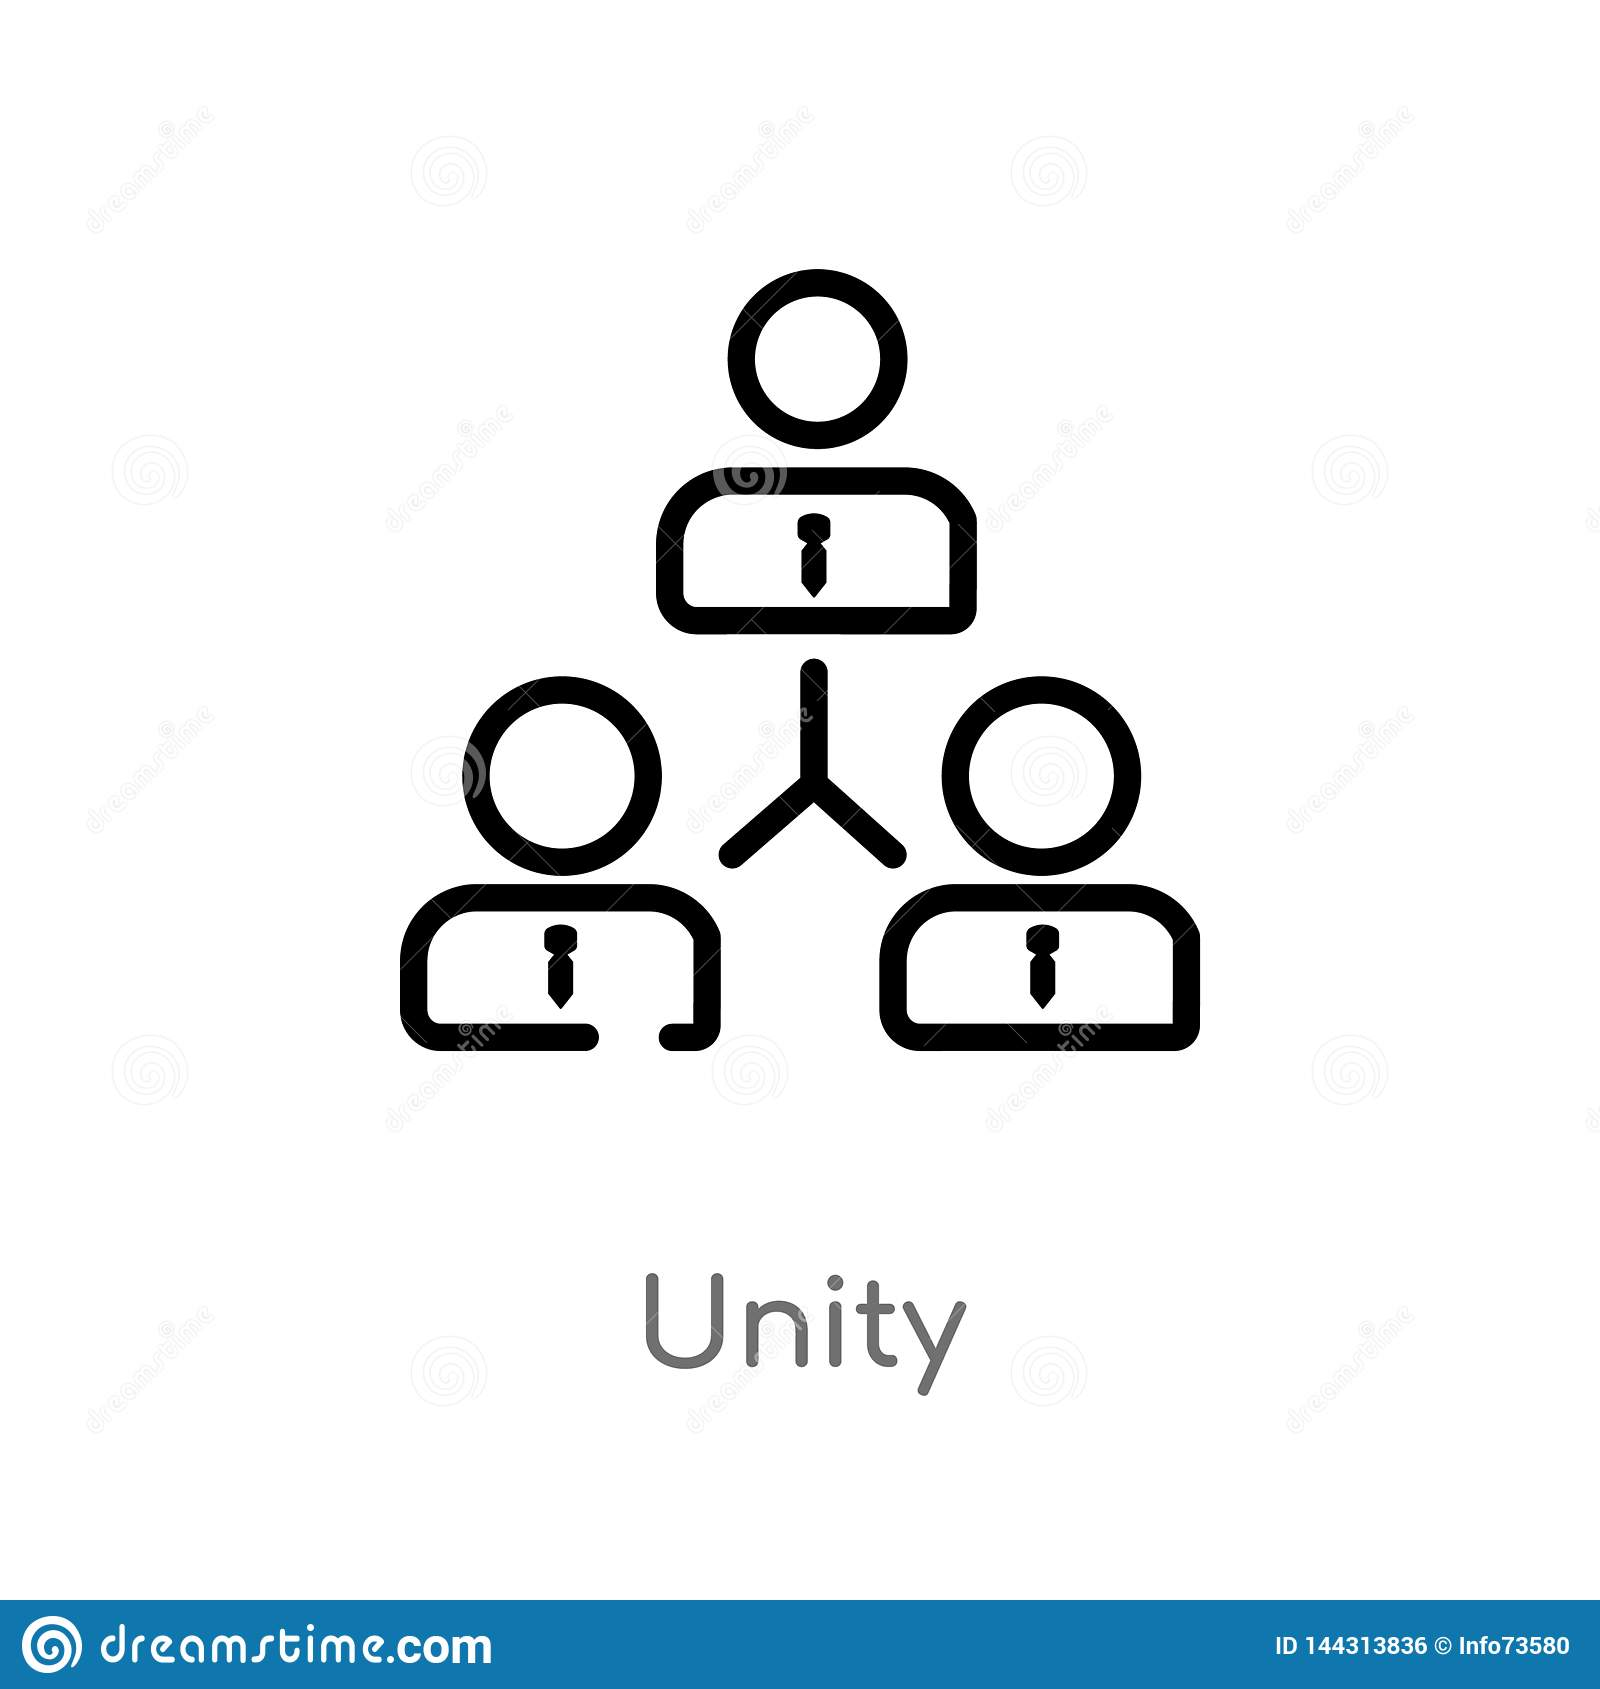 Outline Unity Vector Icon  Isolated Black Simple Line Element